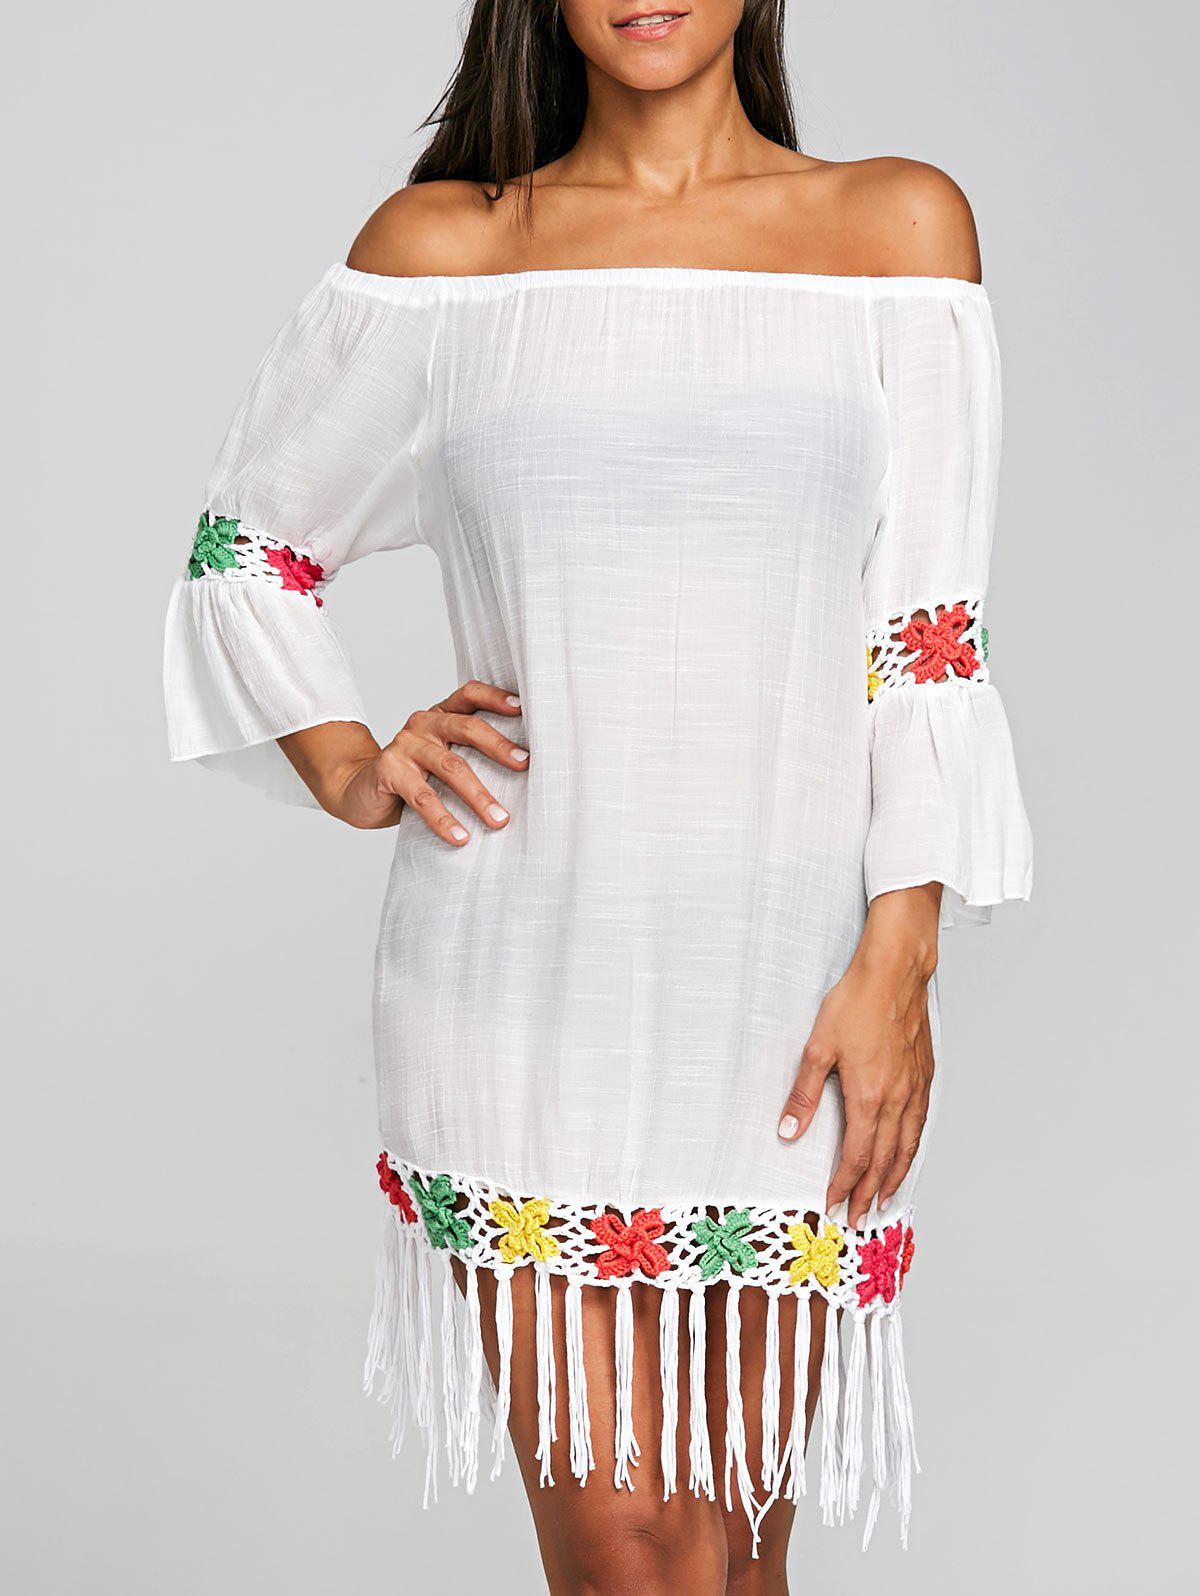 New Fringed Crochet Insert Cover Up Dress